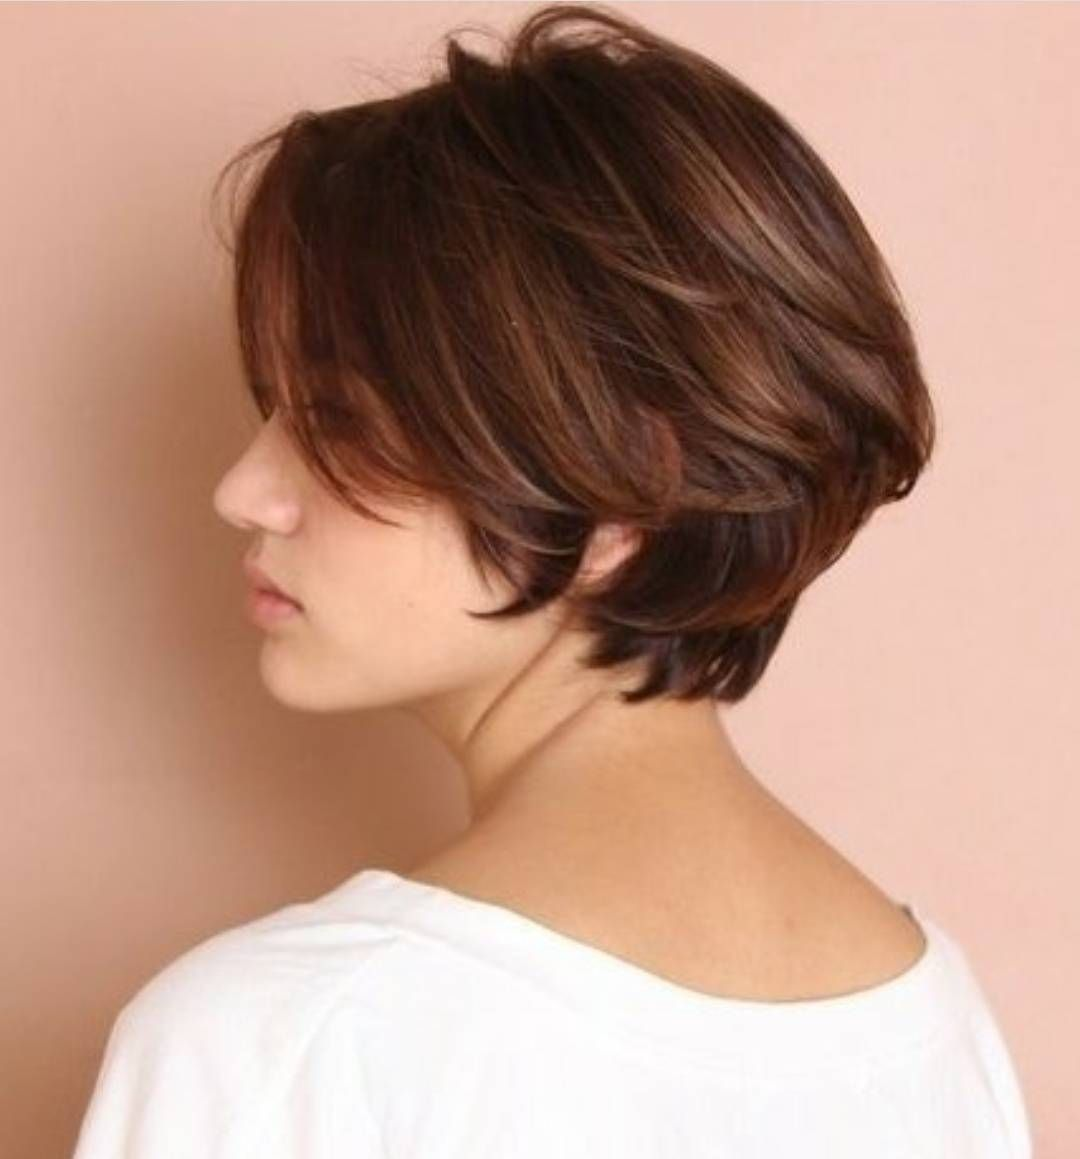 10 Chic Short Bob Haircuts That Balance Your Face